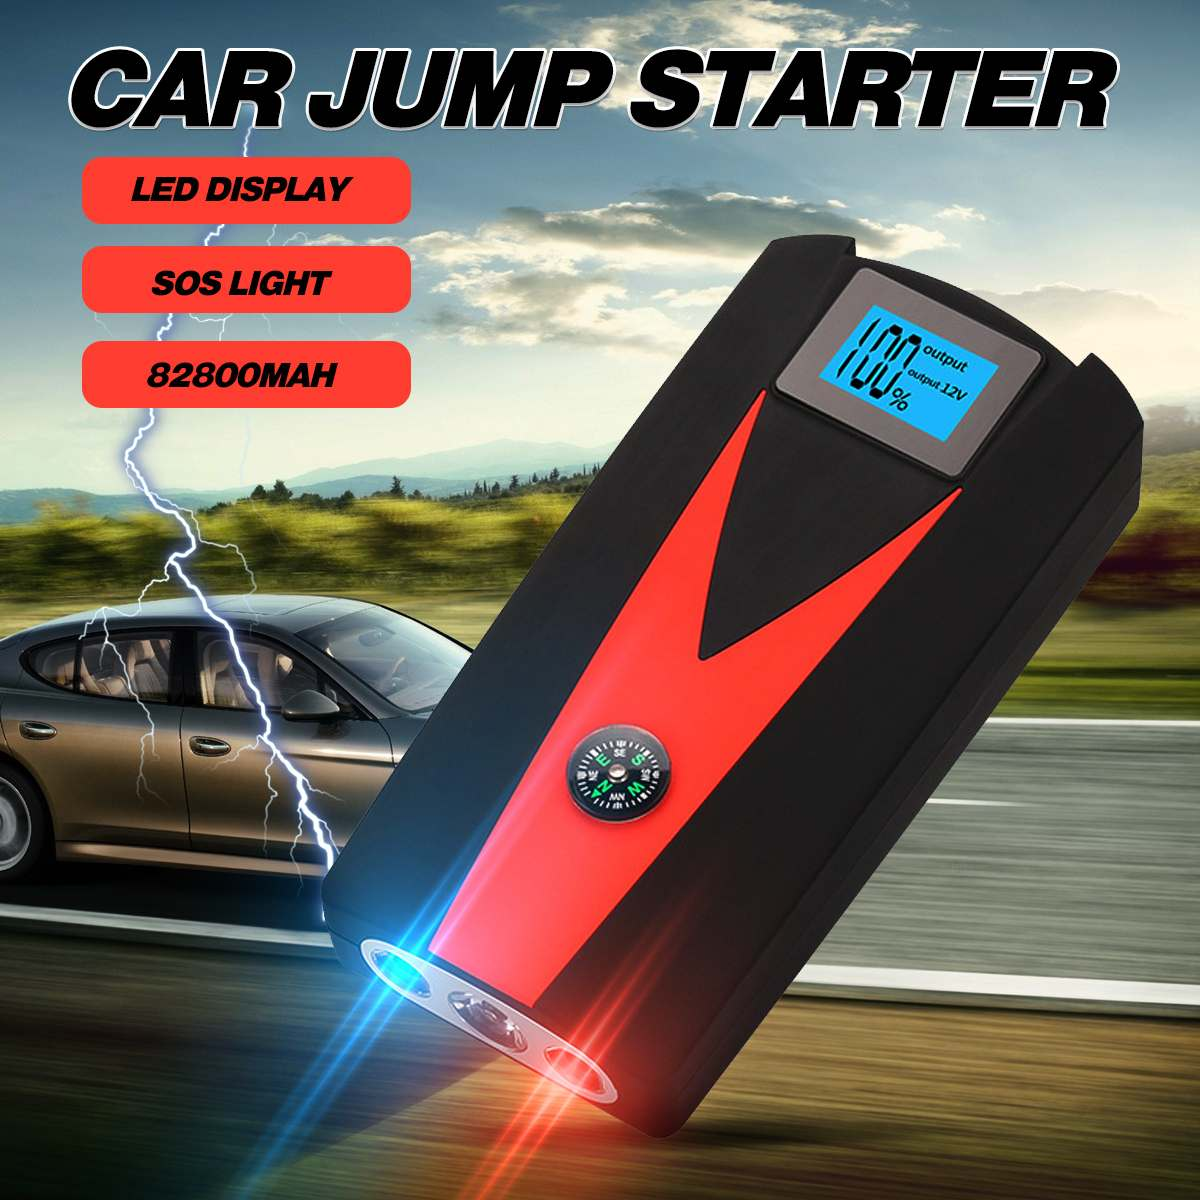 12V 82800/99900mAh Portable <font><b>Car</b></font> Jump Starter Booster <font><b>Battery</b></font> <font><b>Charger</b></font> USB <font><b>Charger</b></font> Emergency Power <font><b>Car</b></font> LED For Starting Device image